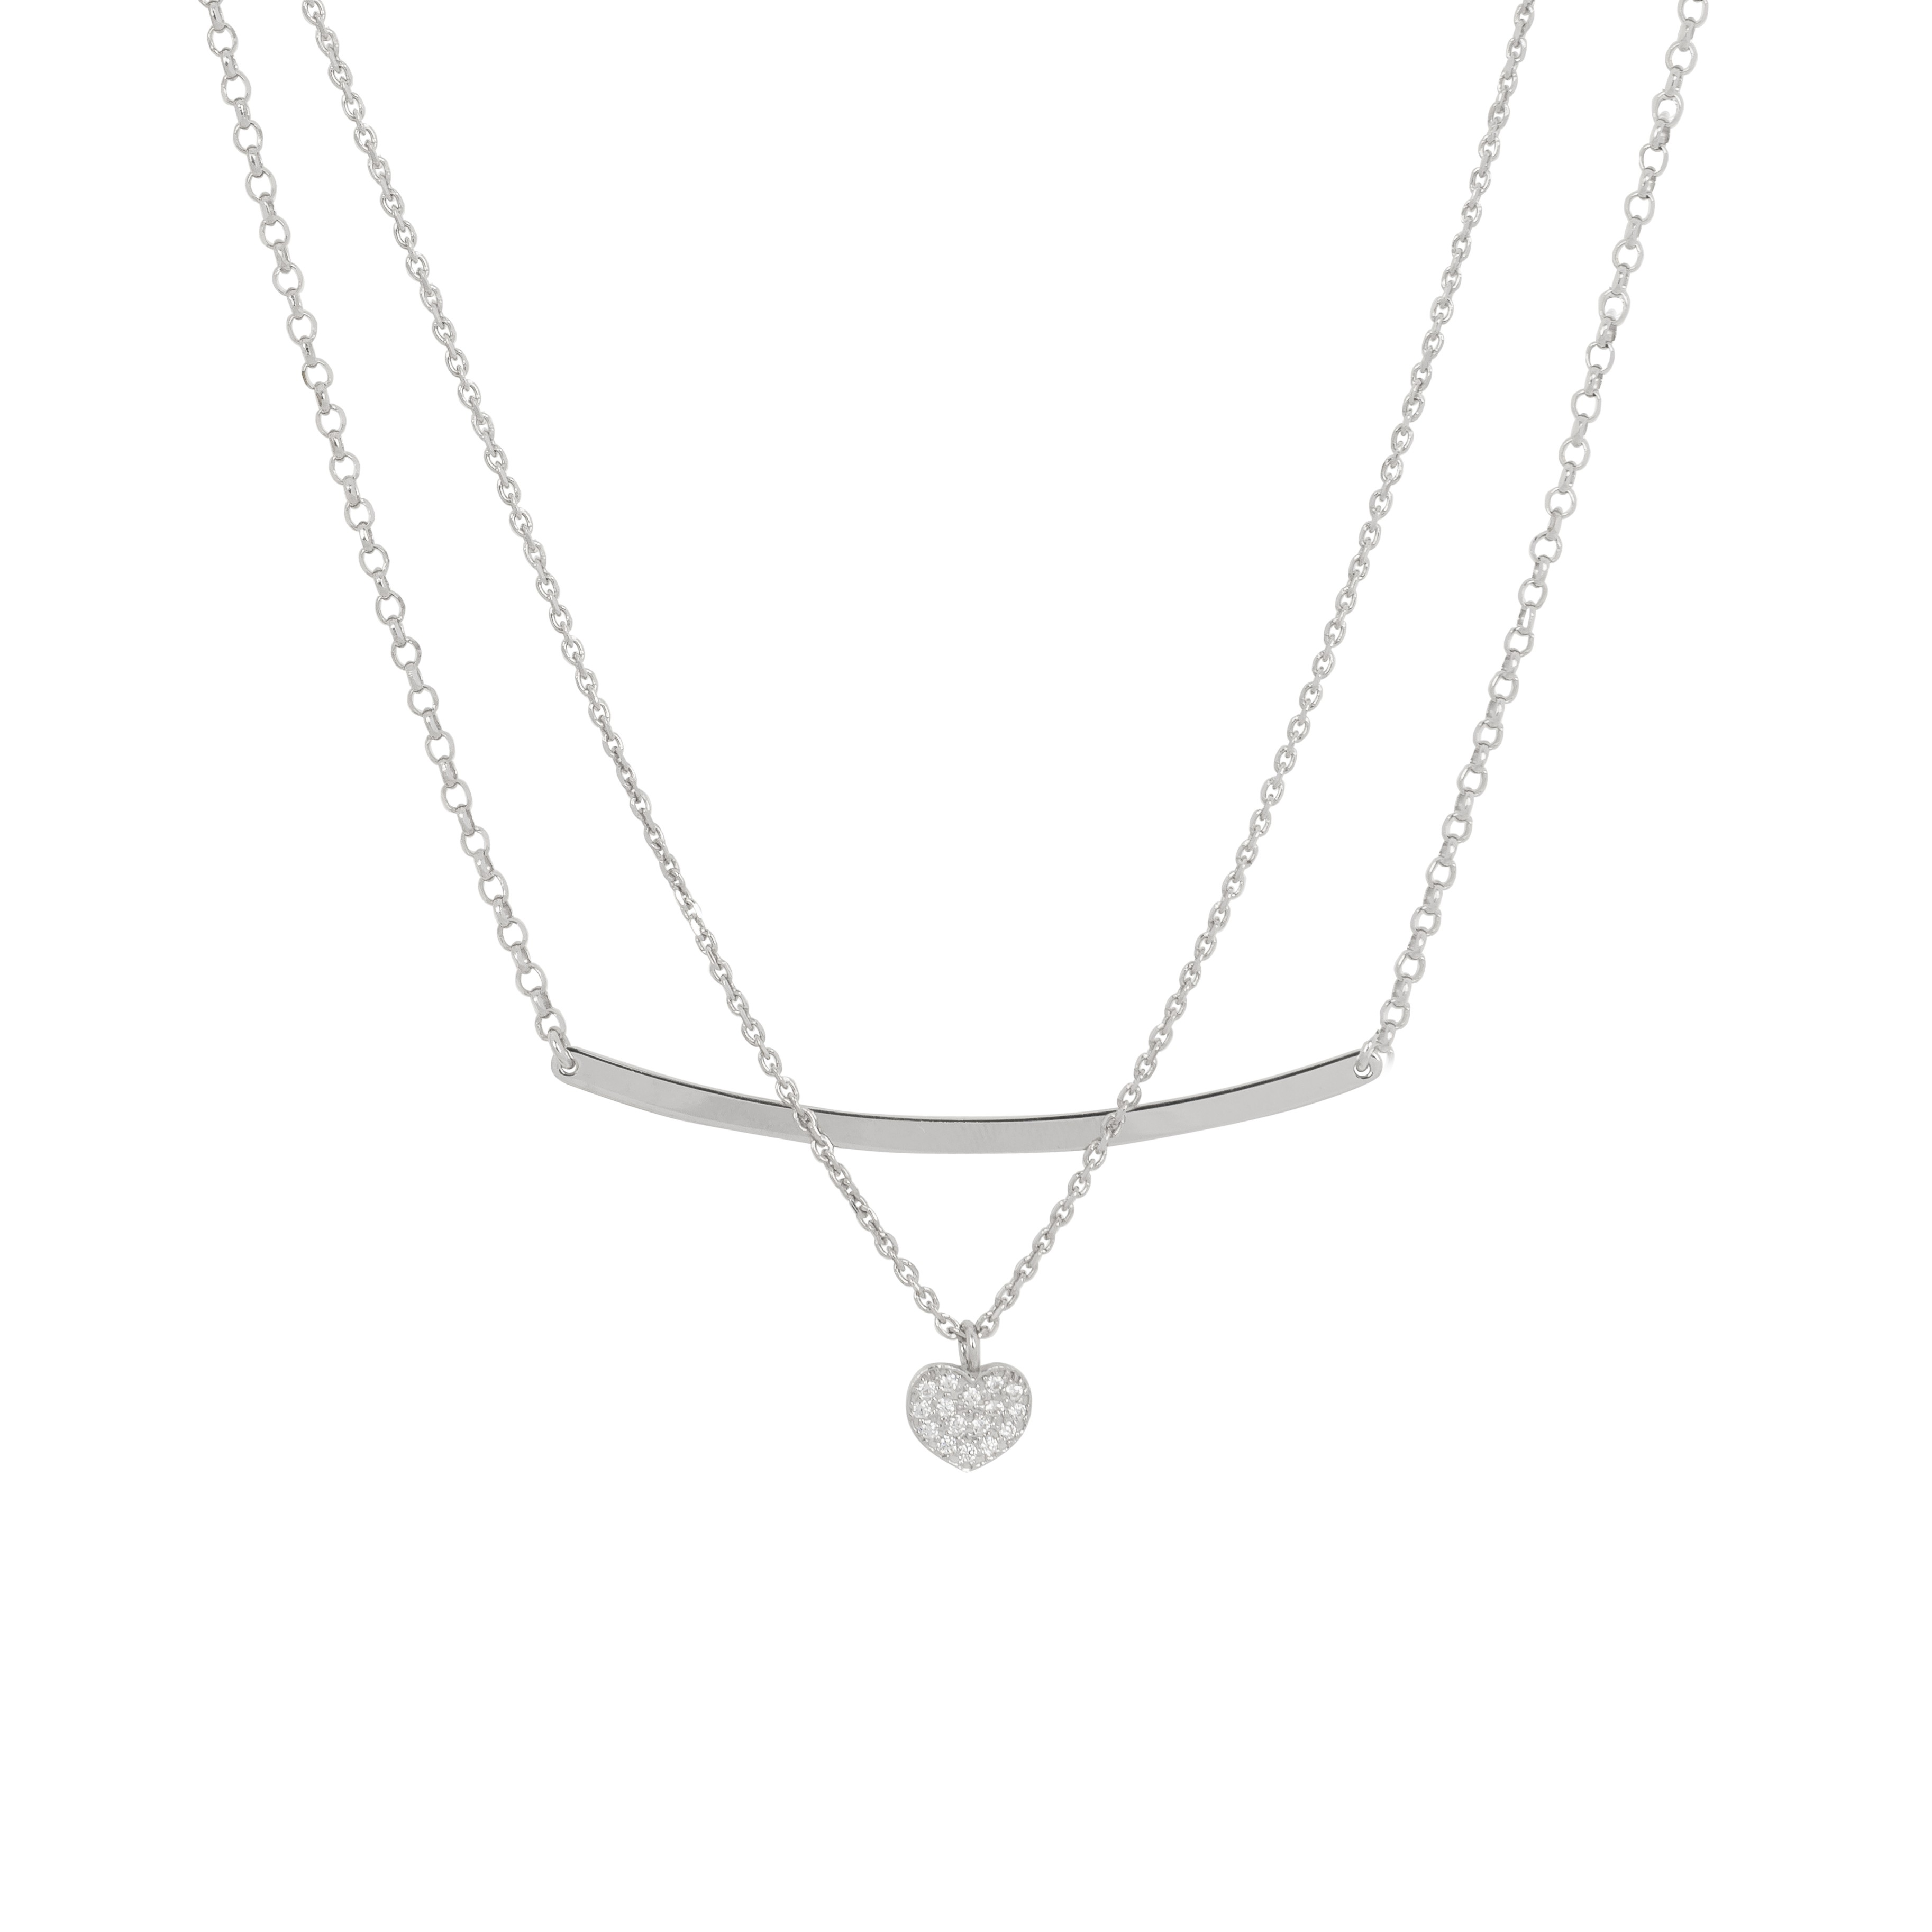 Lovenotes Zilveren Ketting Hart/Staaf multi-layer 43-48 cm 102.0567.48